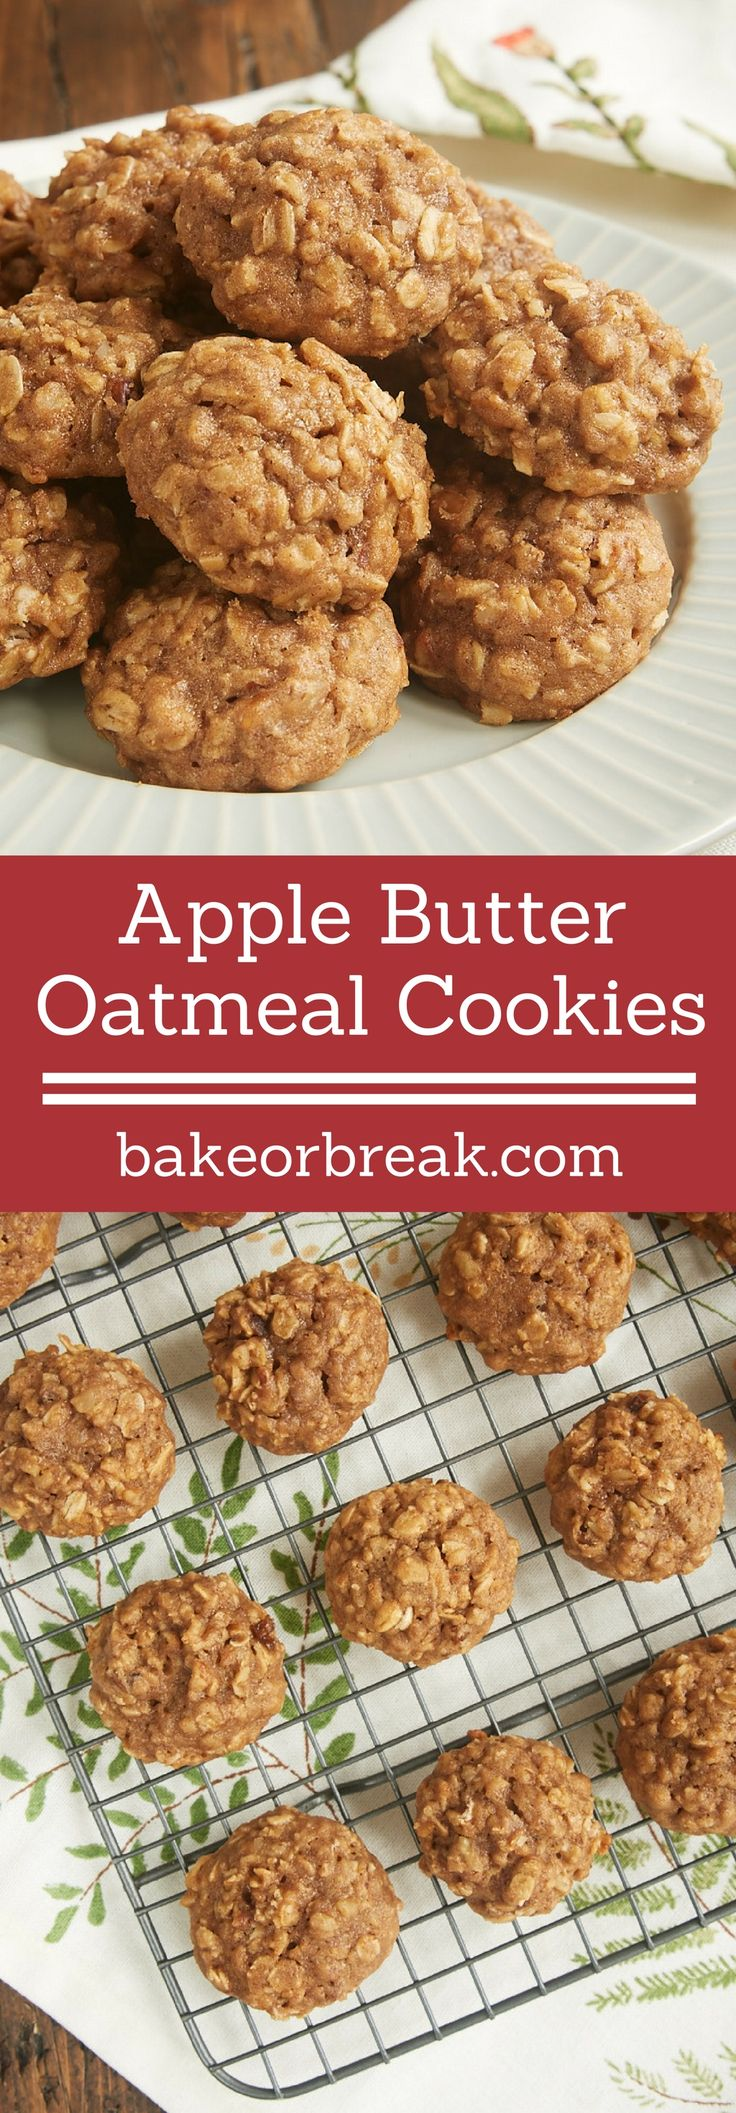 Recipes for apple butter cookies